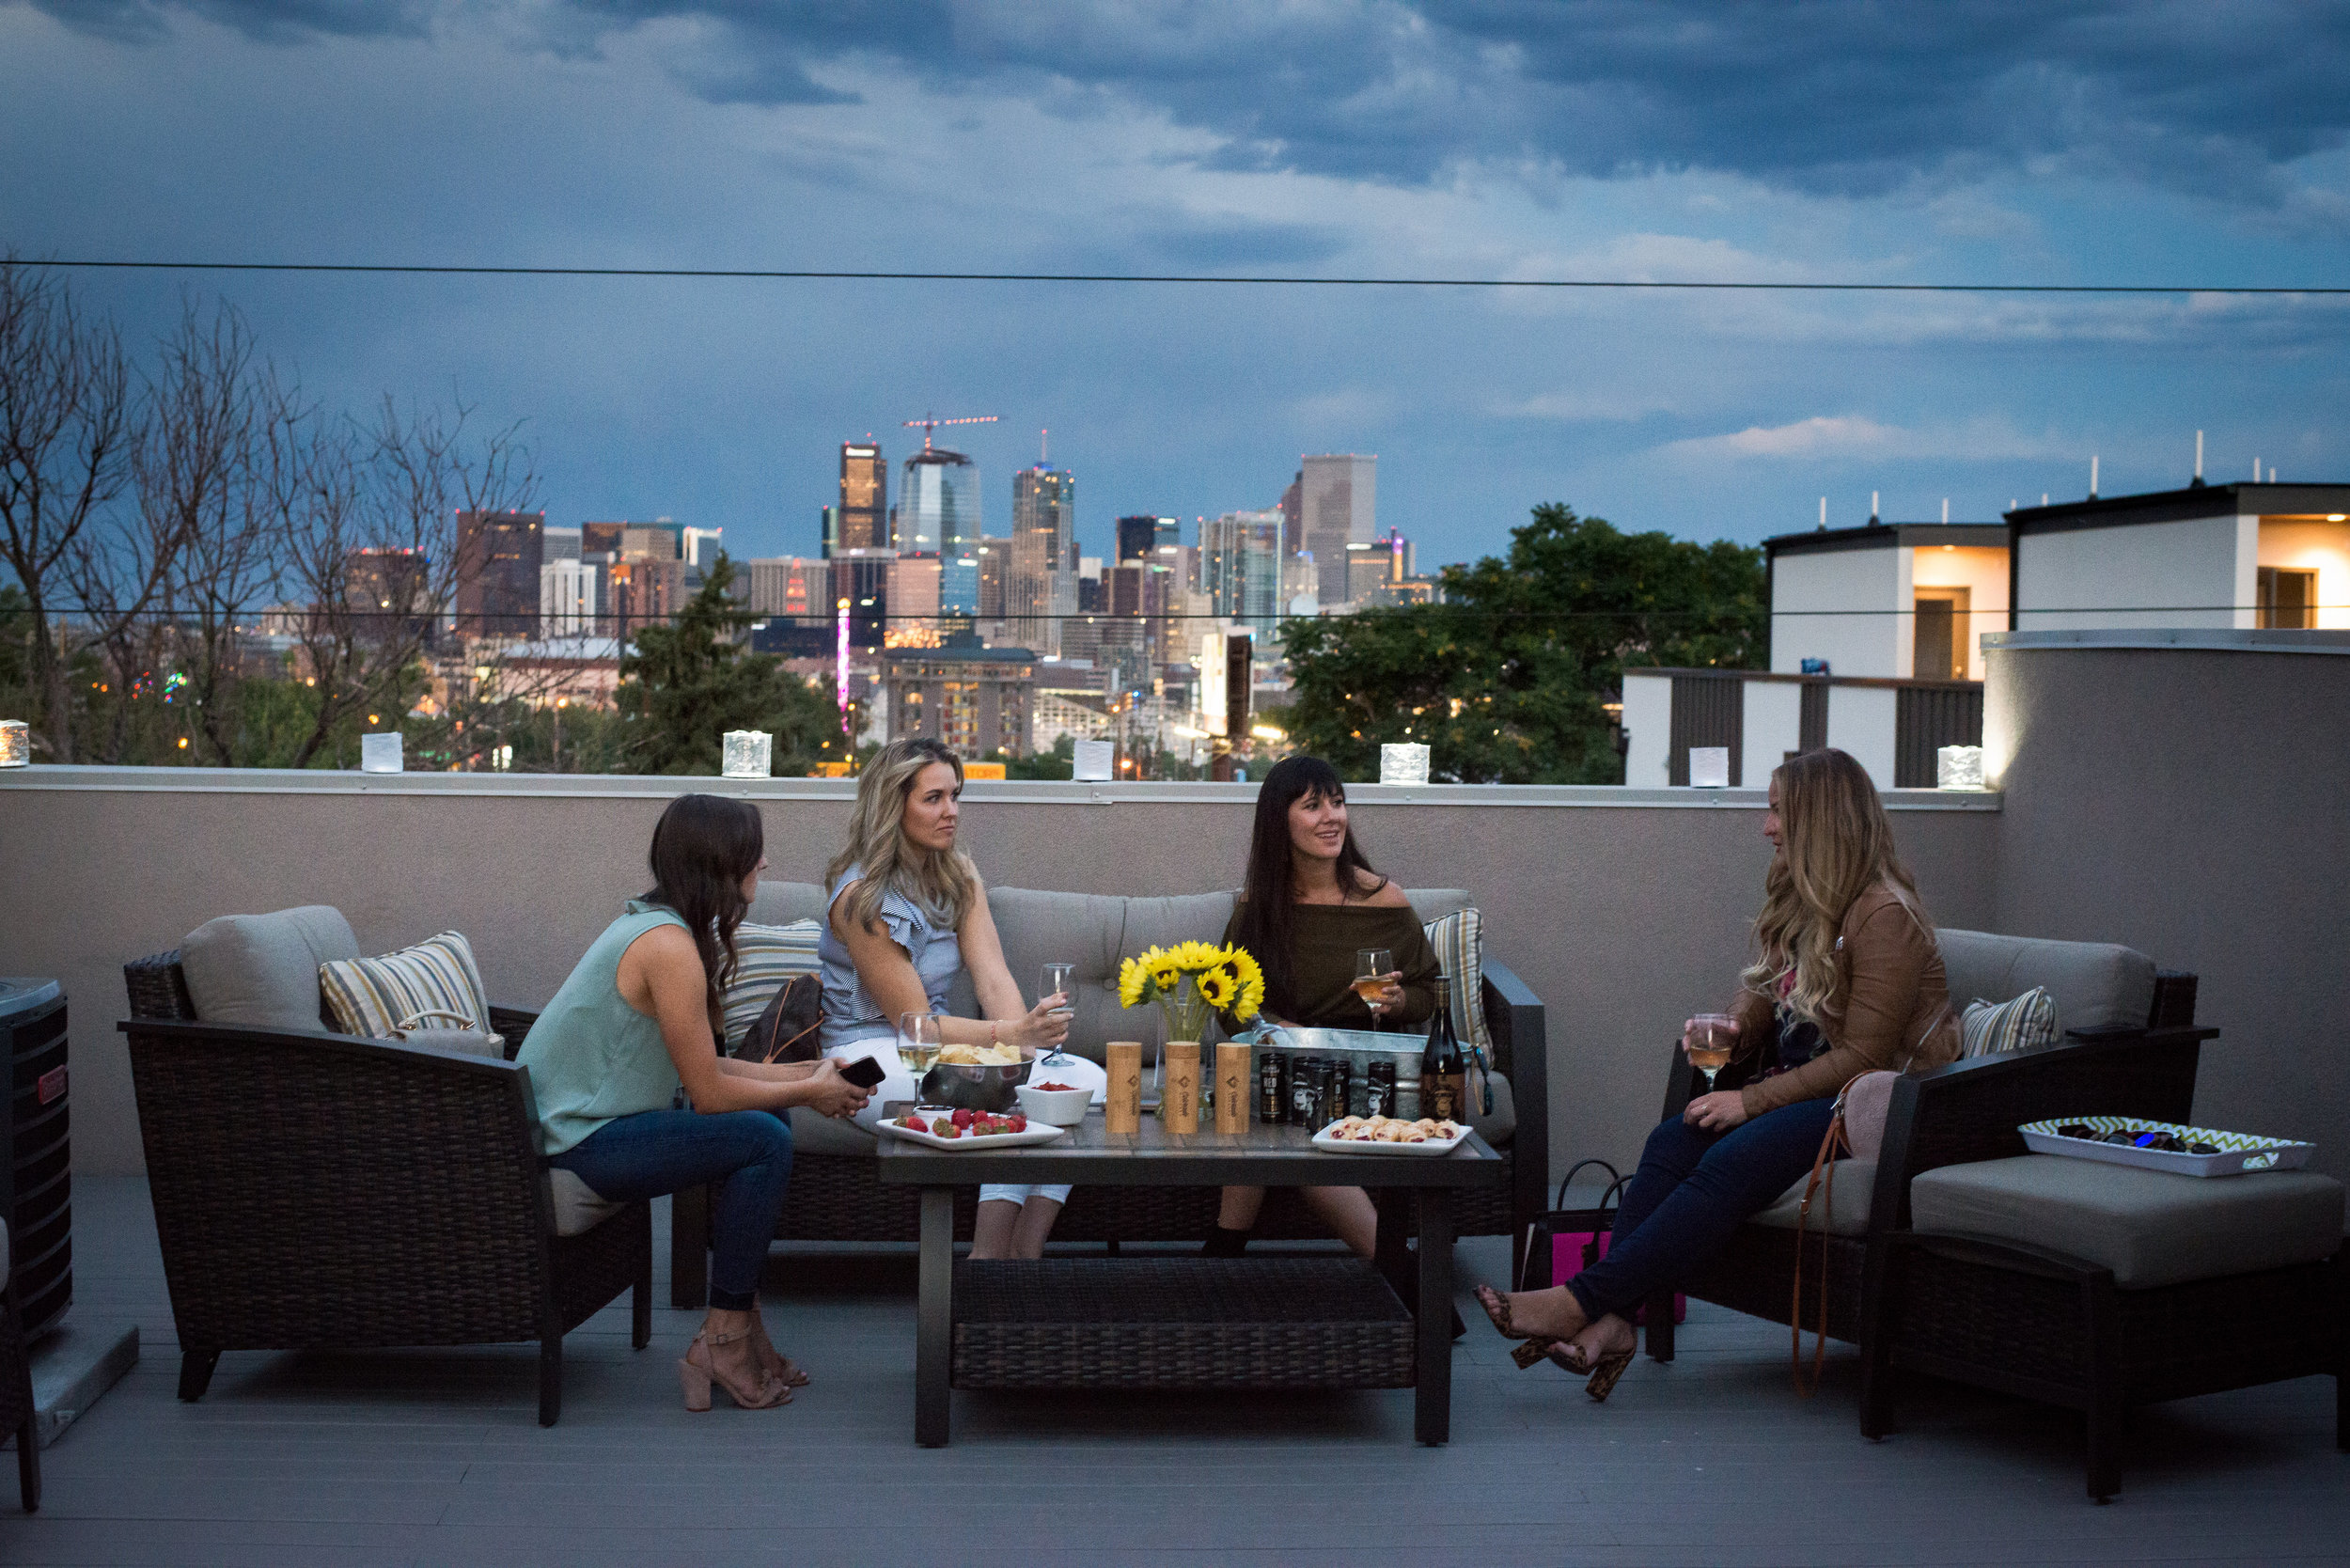 "<img src = girl's-night-in.jpg"" alt = ""taking-time-for-yourself-a-girl's-night-inspiration-rooftop-wine-and-best-girl-friends"">"